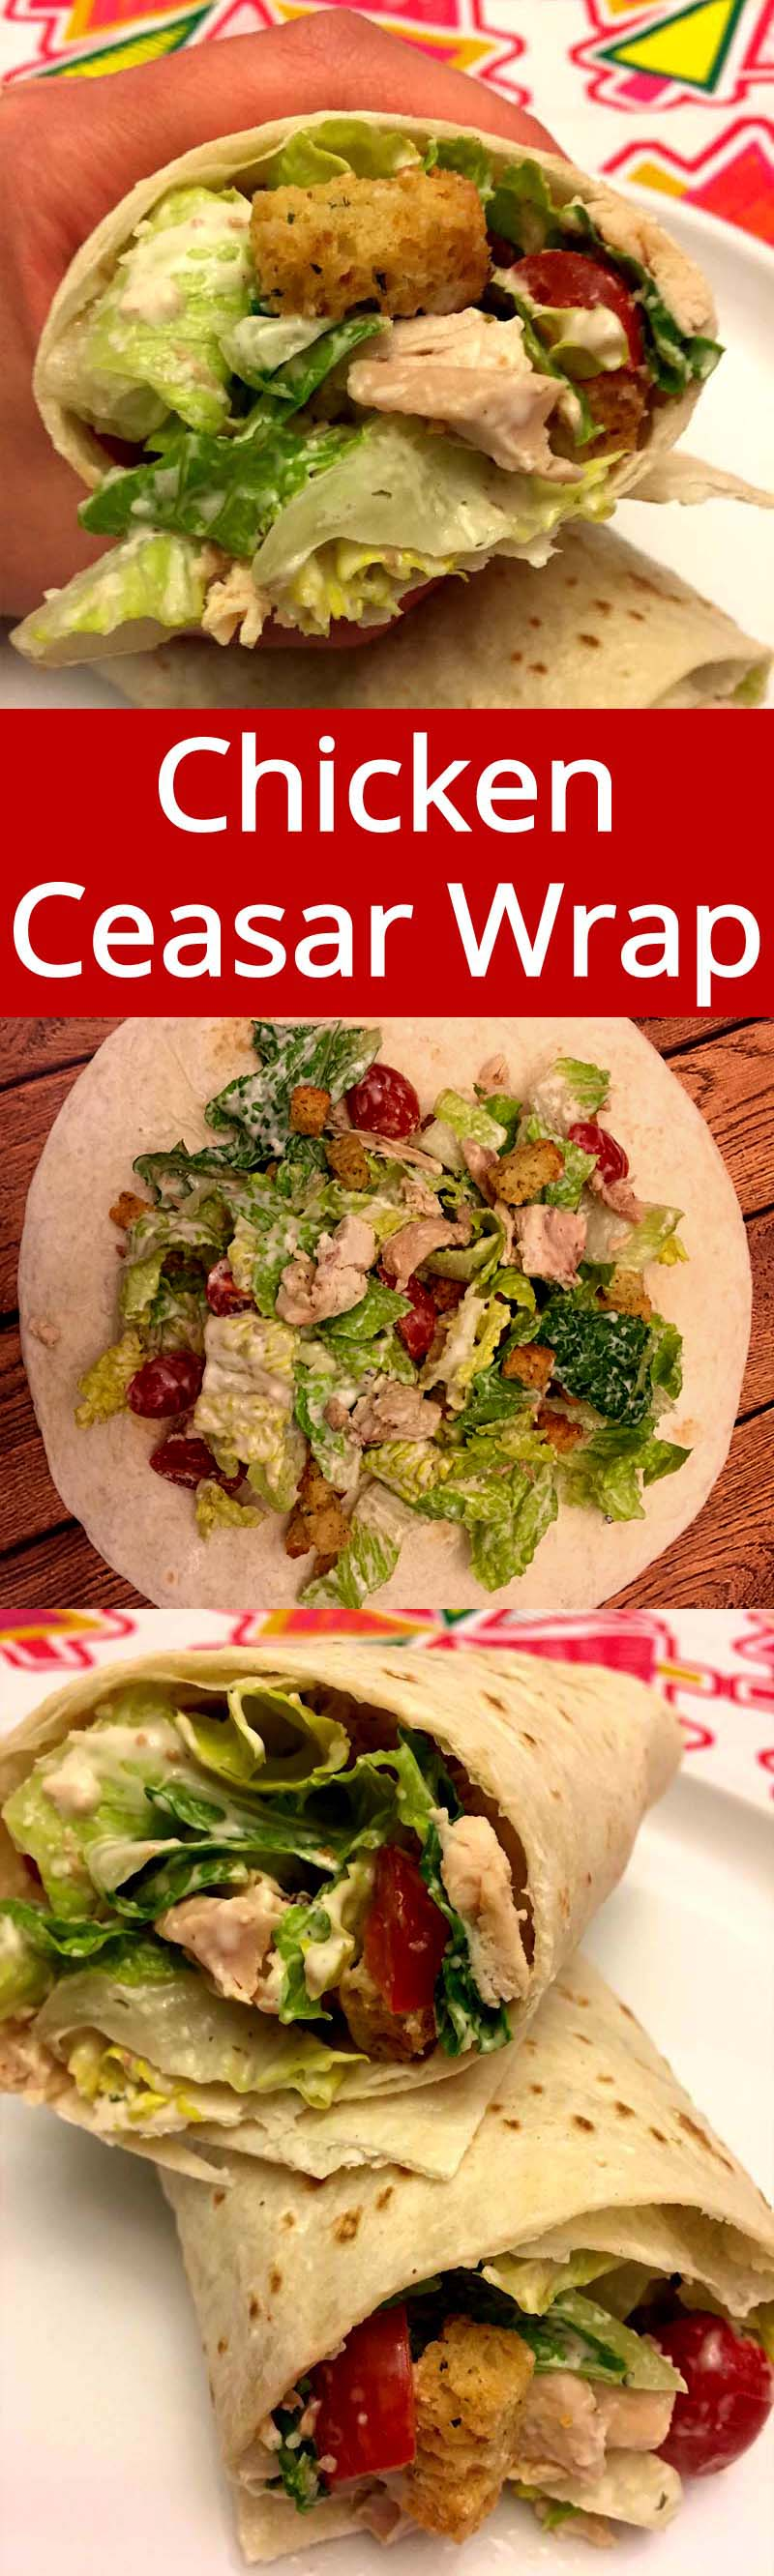 These are so filling and easy to make! What a great idea!  MelanieCooks.com